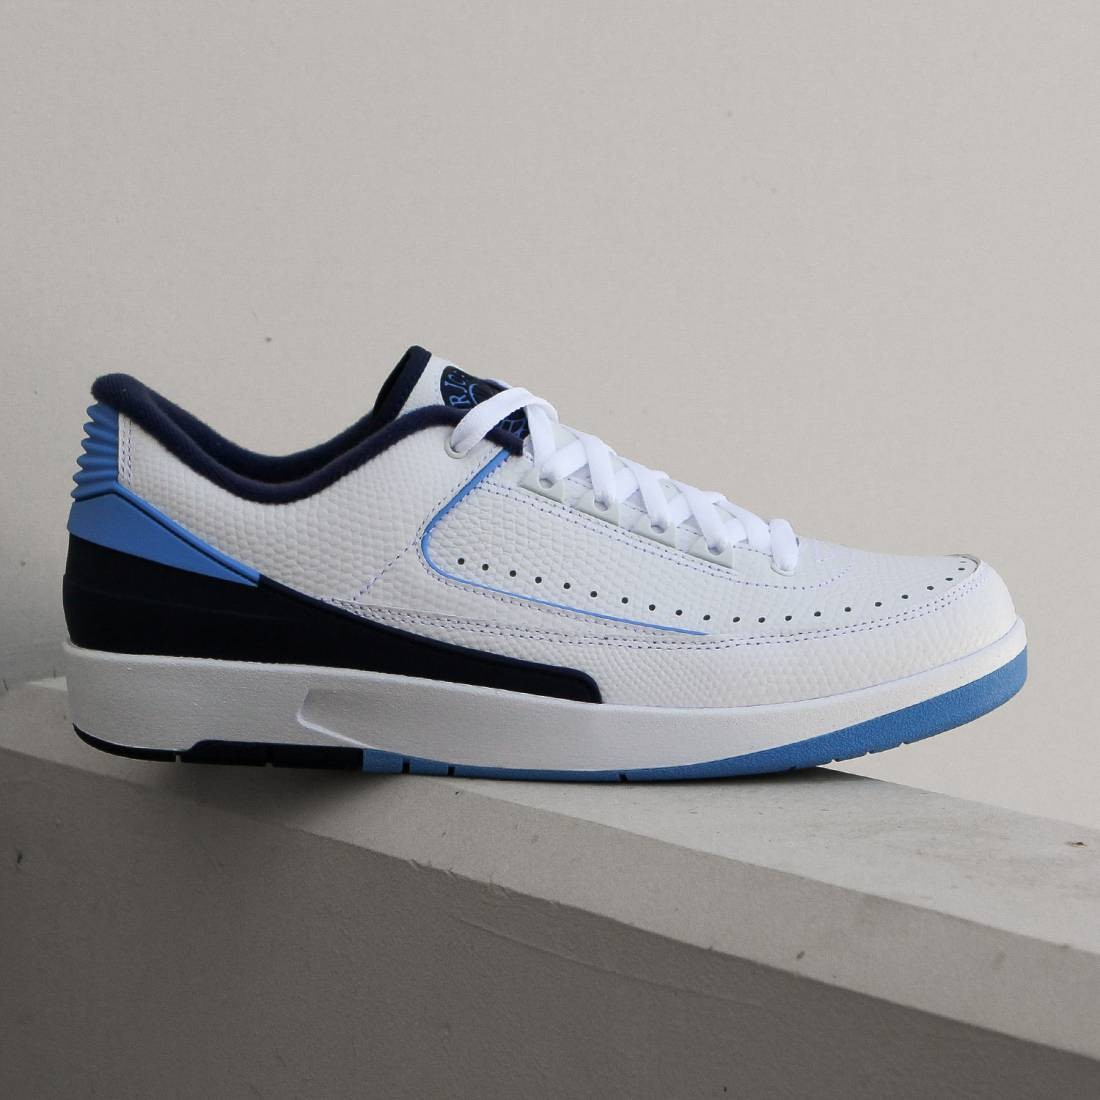 detailed look c1f87 dee63 Jordan Men Air Jordan 2 Retro Low Midnight Navy (white   university  blue-midnight navy)